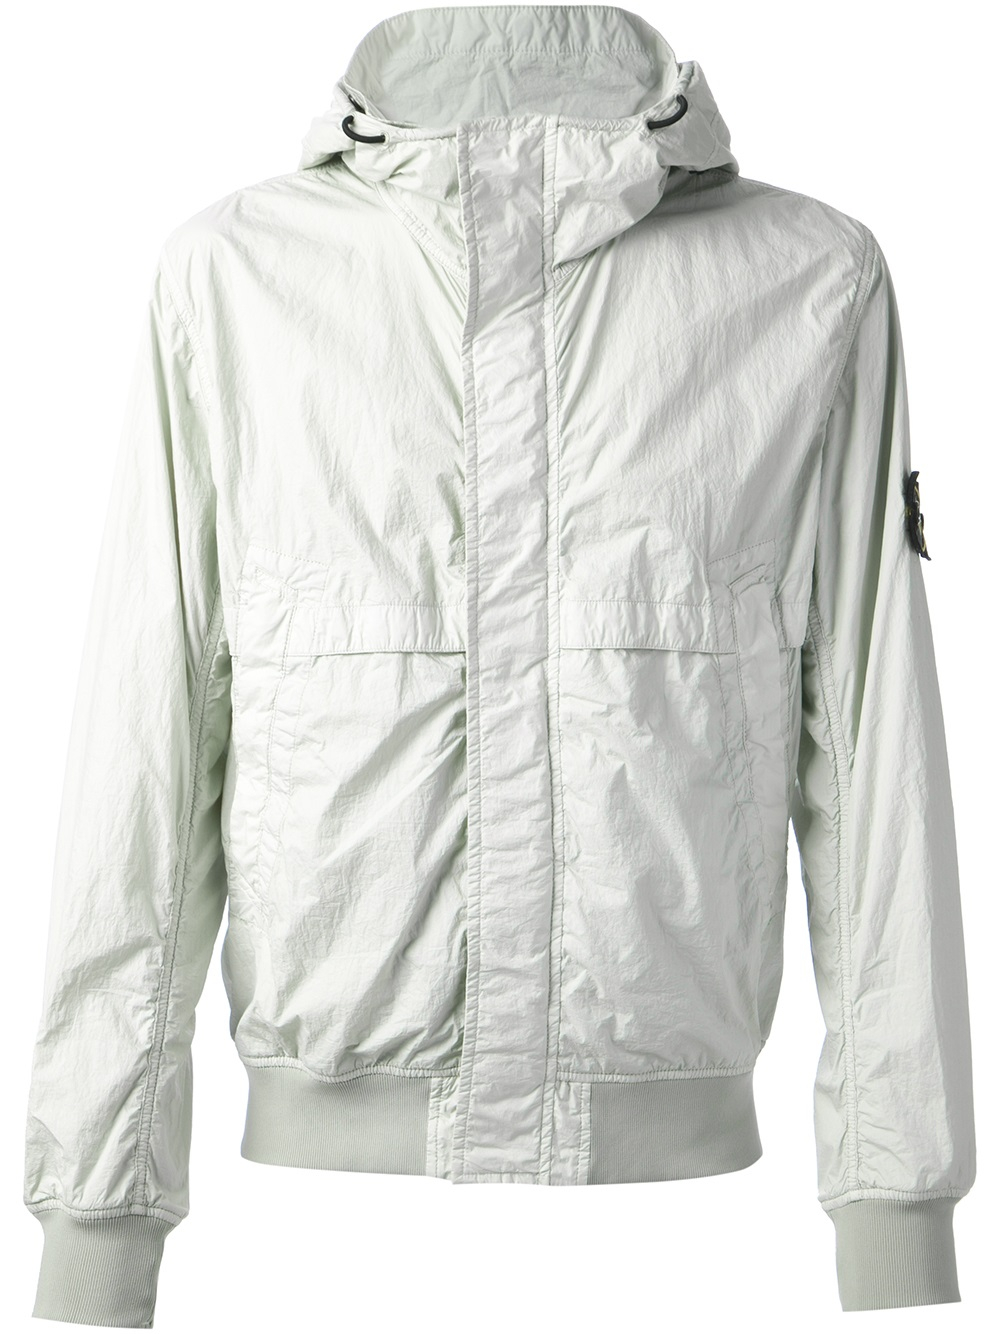 lyst stone island hooded windbreaker jacket in white for men. Black Bedroom Furniture Sets. Home Design Ideas